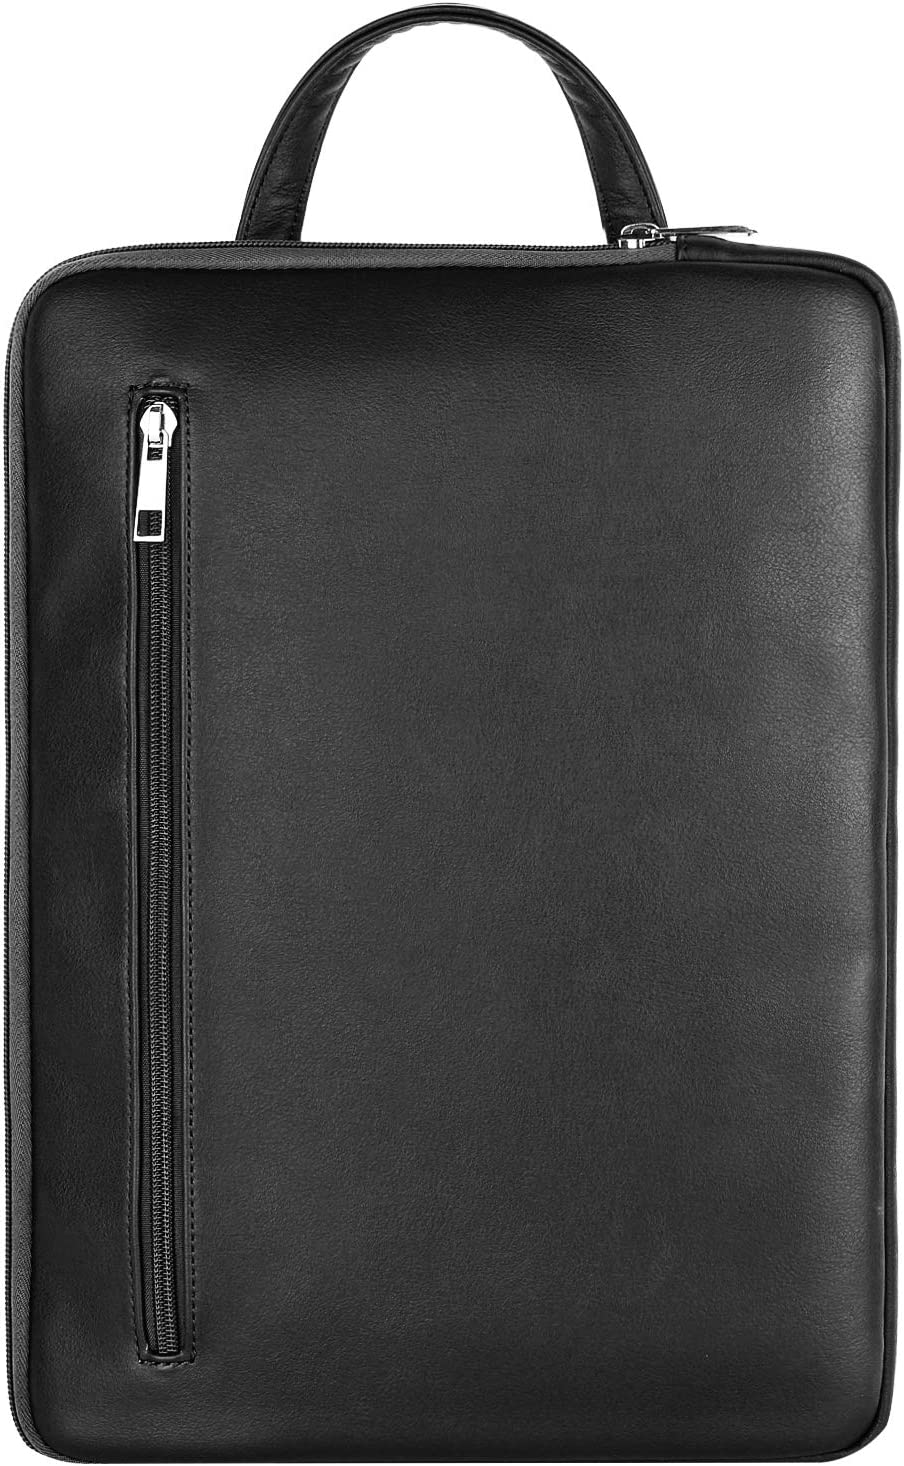 "MoKo 13-13.5 Inch Laptop Sleeve Bag with Handle Fits MacBook Pro/MacBook Air 13 Inch, Surface Book/Surface Laptop Surface Pro X 13"", PU Leather Ultrabook Briefcase Carrying Case Bag - Black"